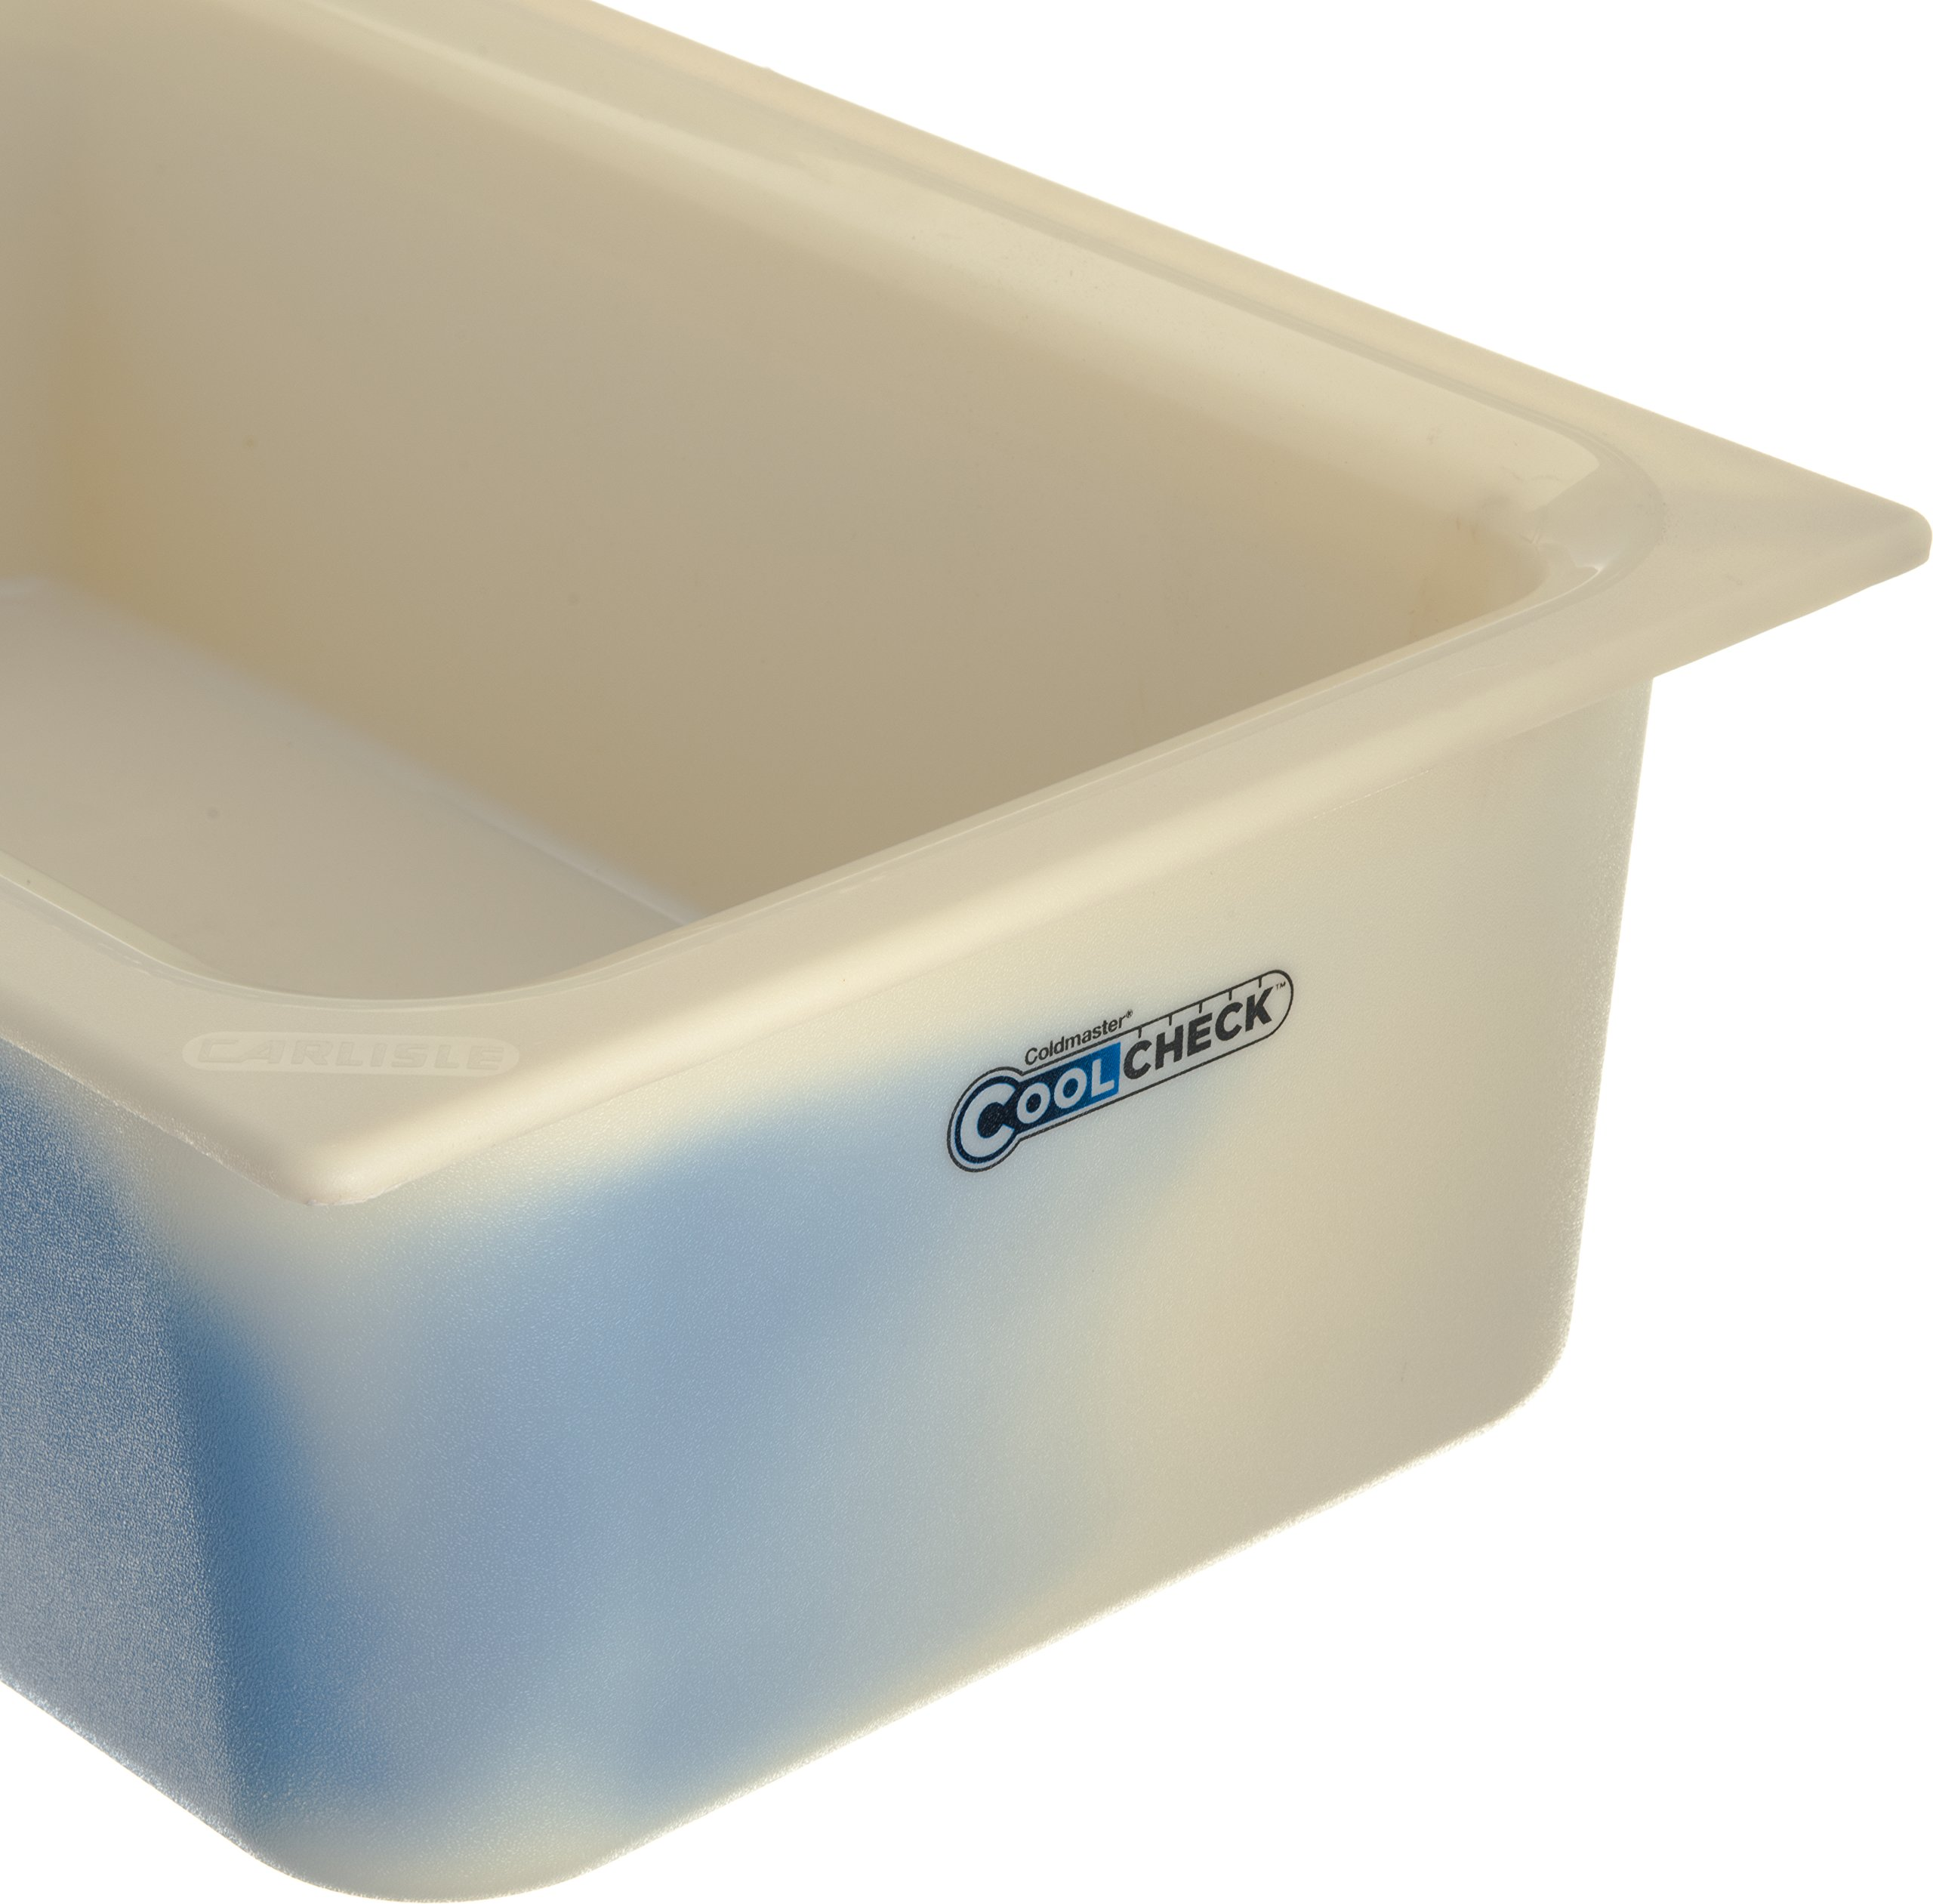 Carlisle CM1100C1402 Coldmaster CoolCheck 6'' Deep Full-Size Insulated Cold Food Pan, 15 Quart, Color Changing, White/Blue by Carlisle (Image #4)